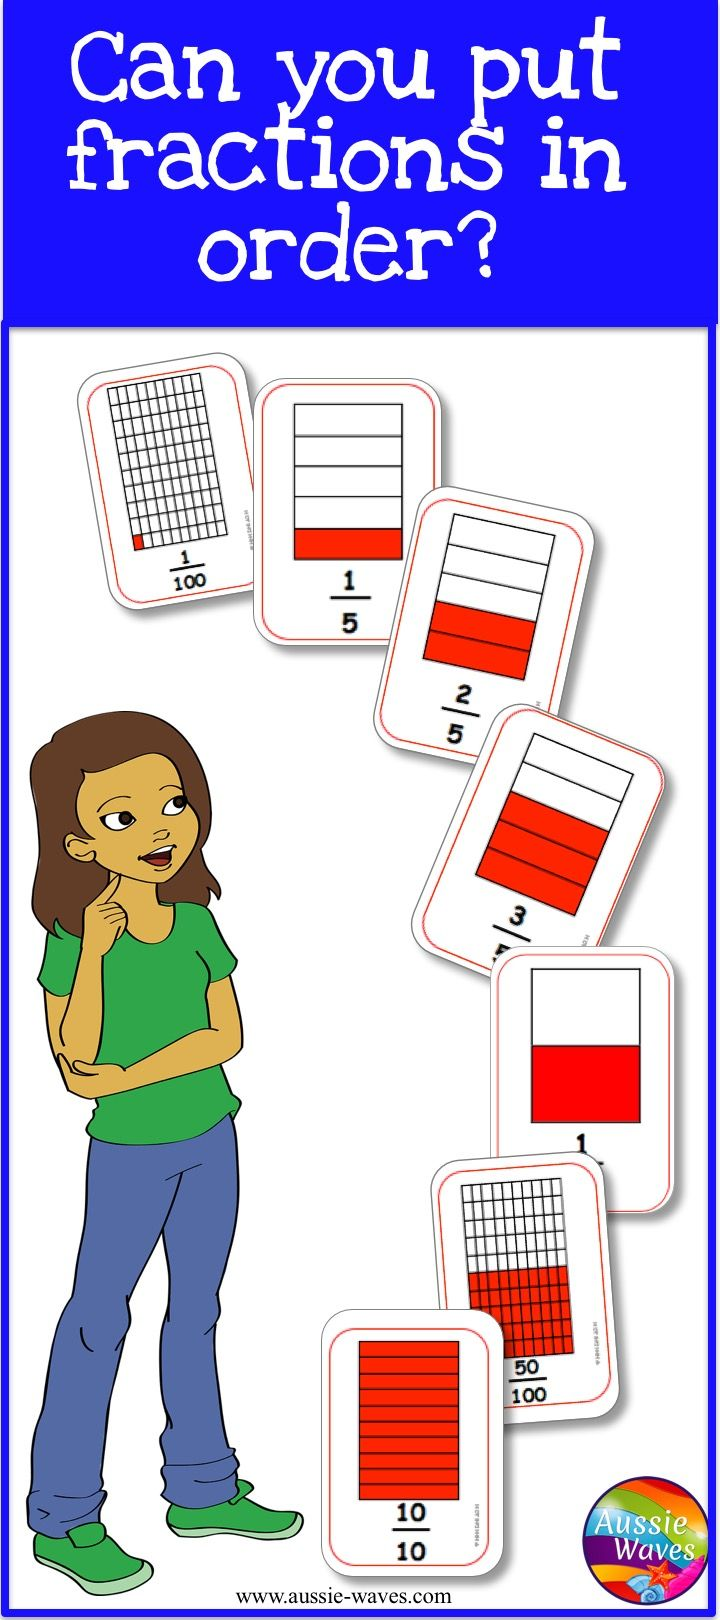 Over 60 printable cards with fractions and images to help students understand fractions.